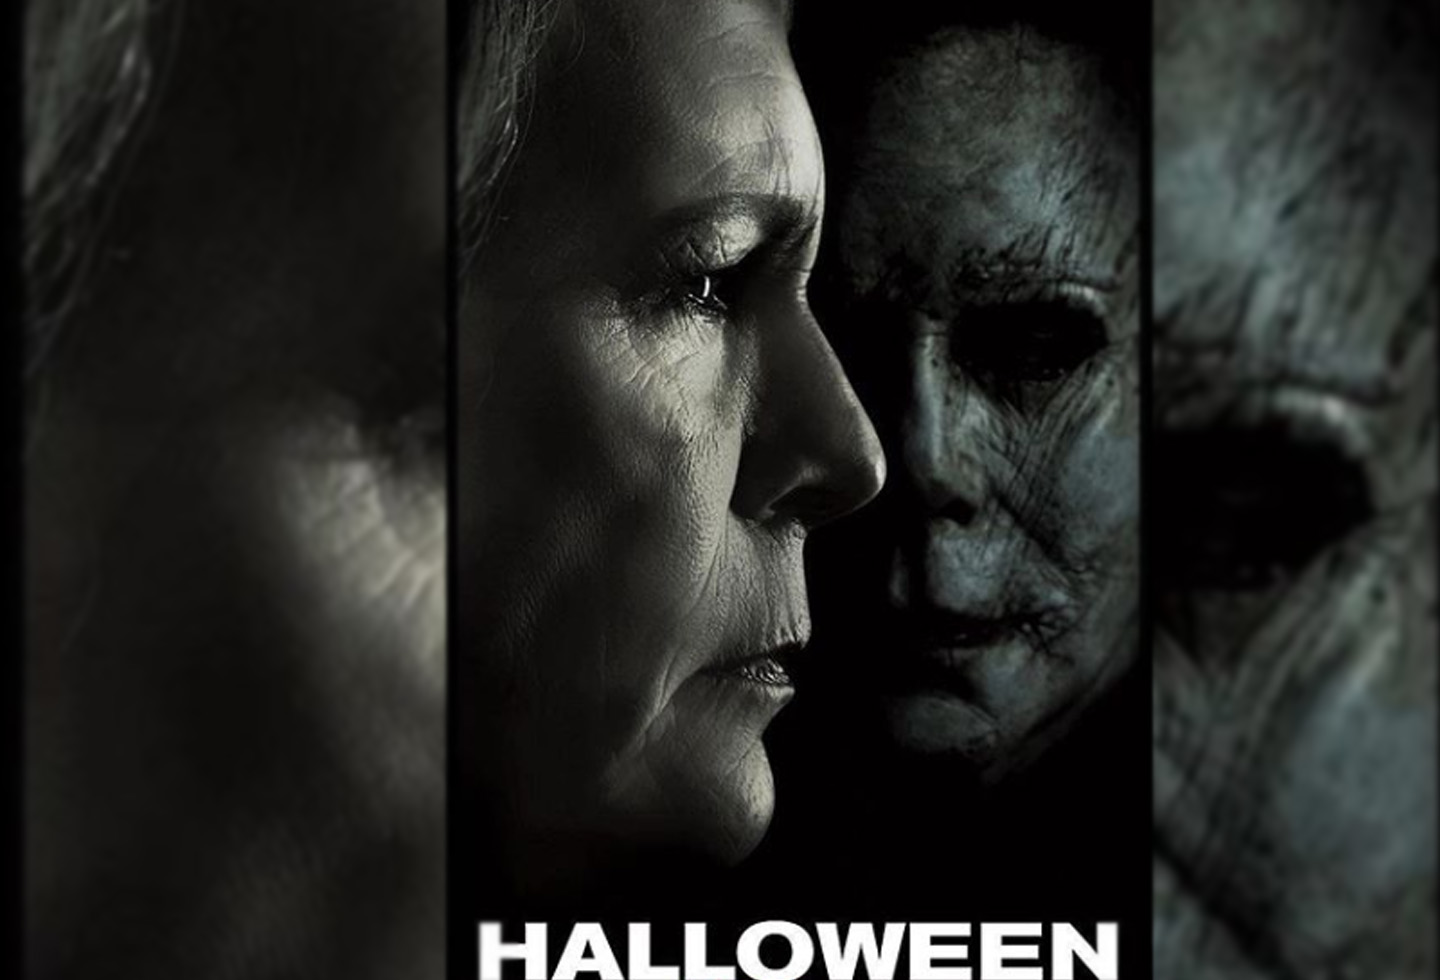 halloween is one of the most important horror movie classic of the years because its mysterious and surprising story marked a huge difference between the